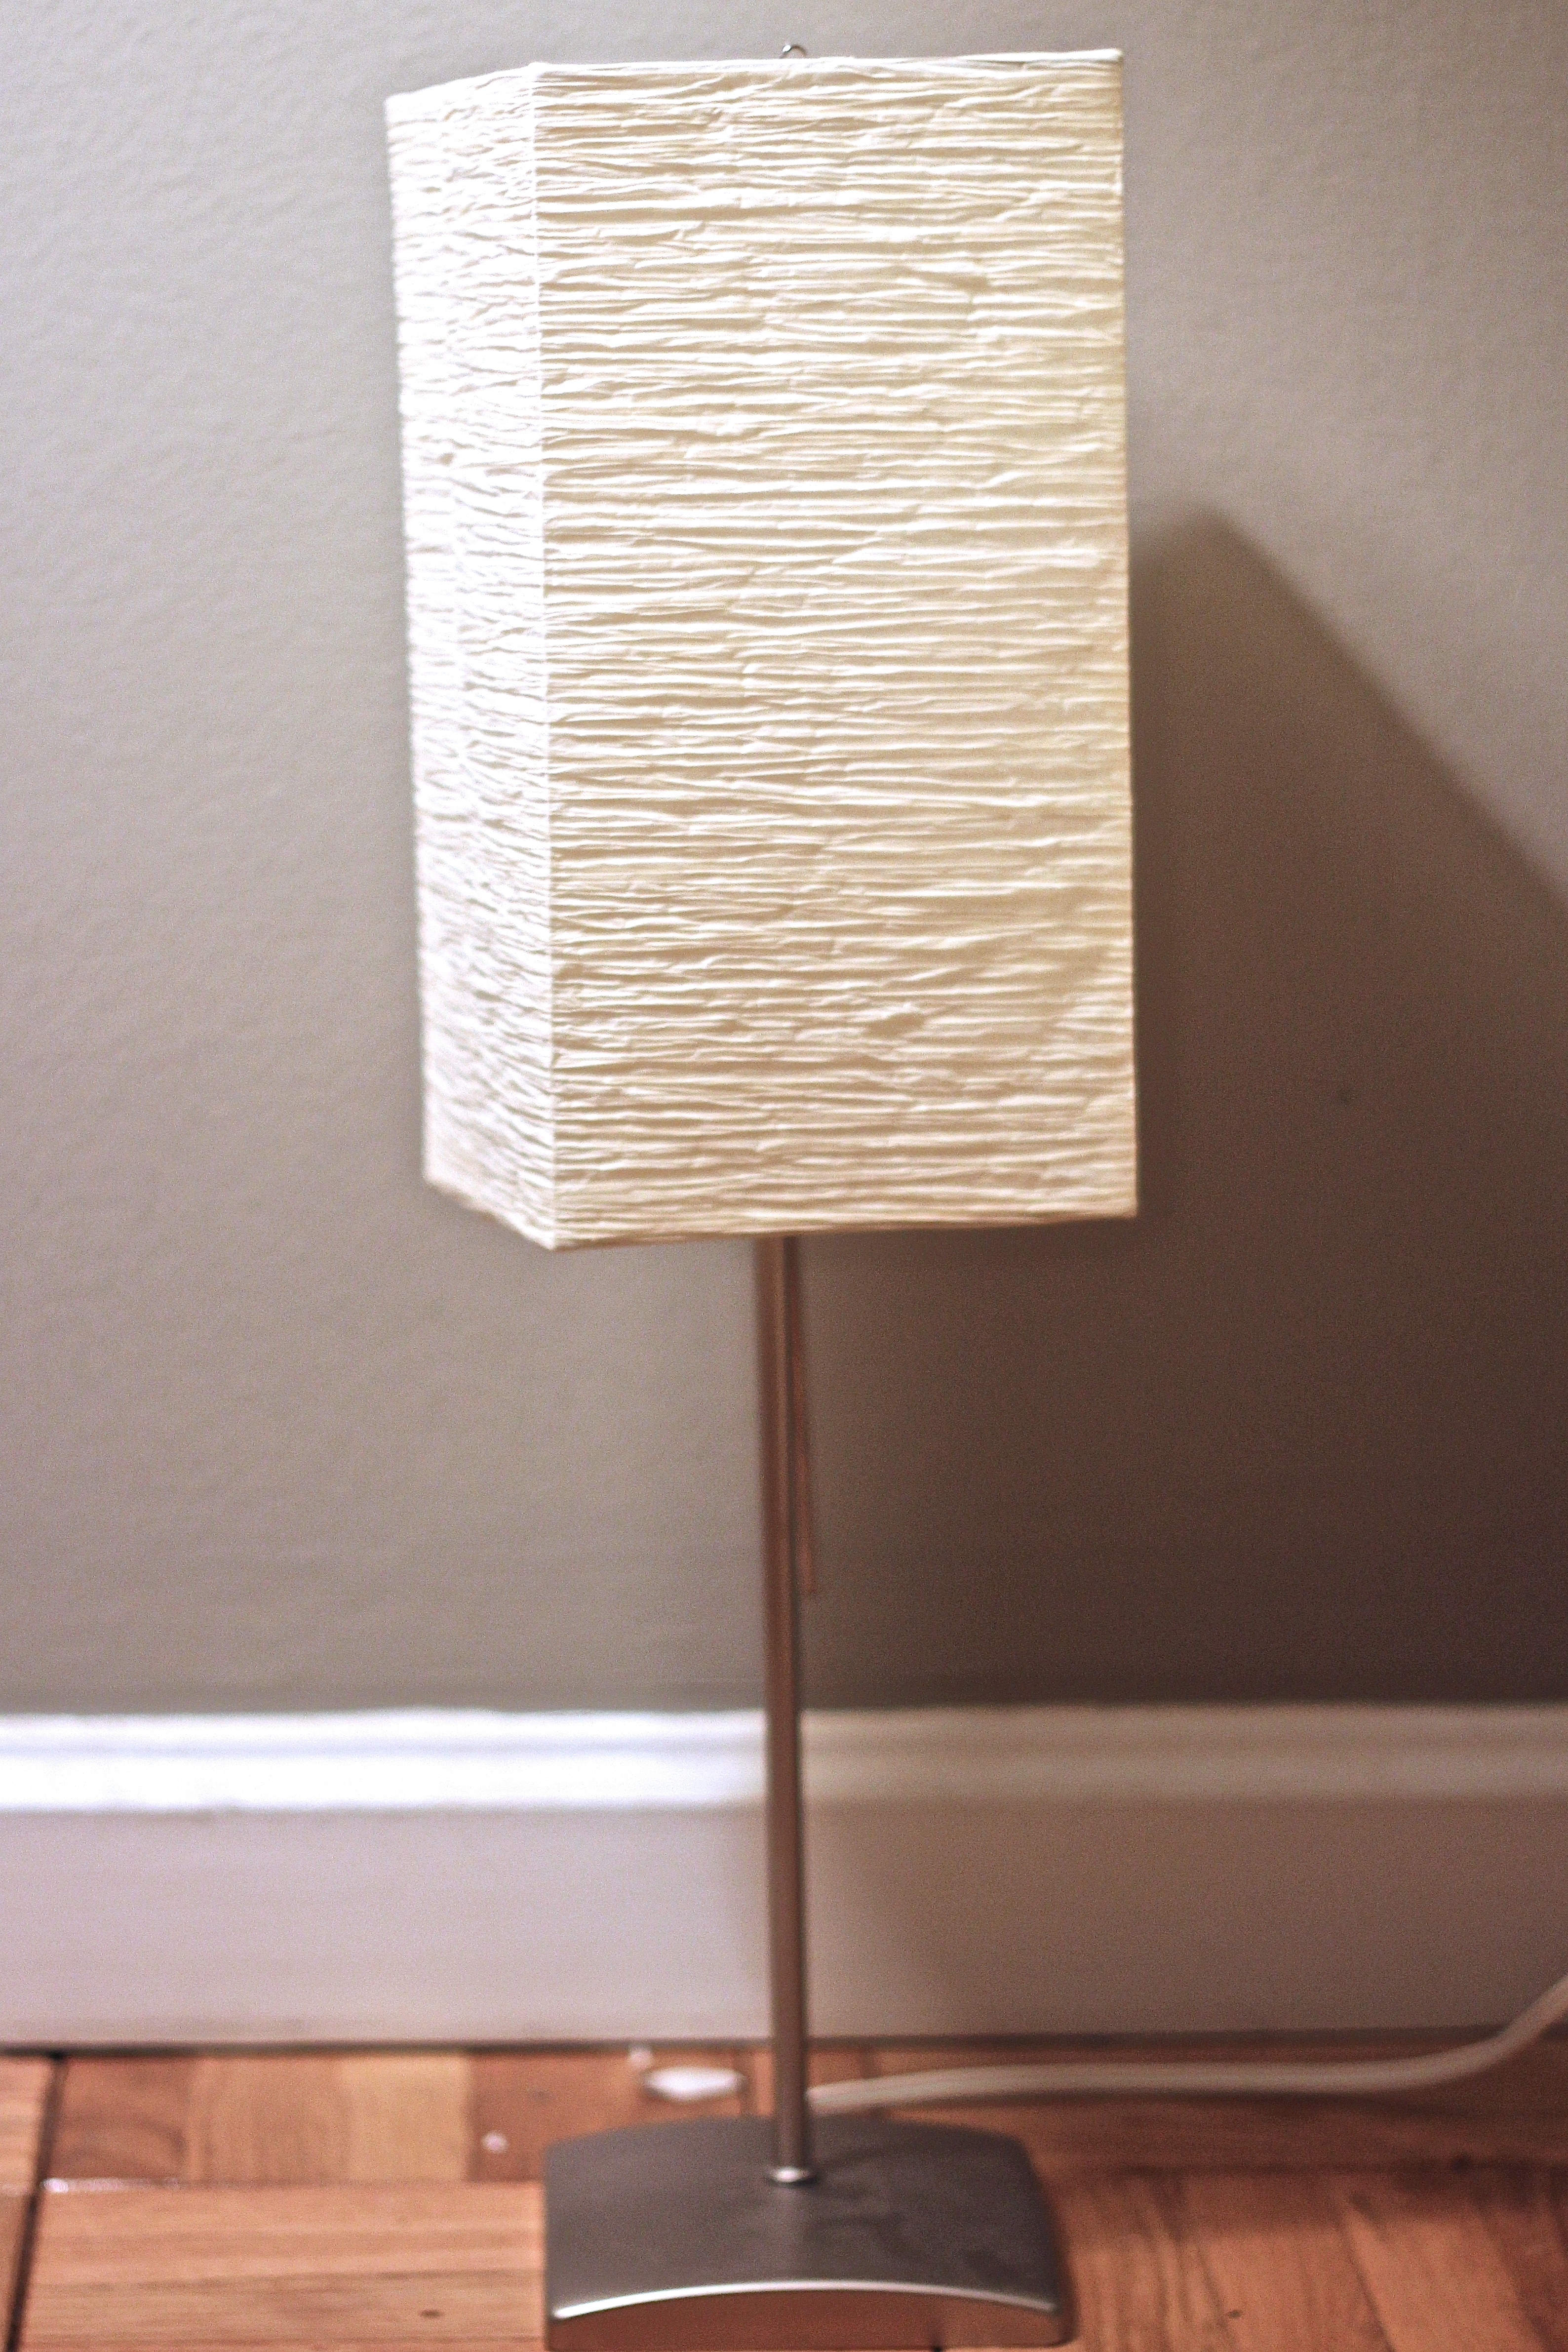 Beautiful Nightstand Lamps Ikea Perfect Furniture Home Design Ideas Regarding Living Room Table Lamps At Ikea (#2 of 15)